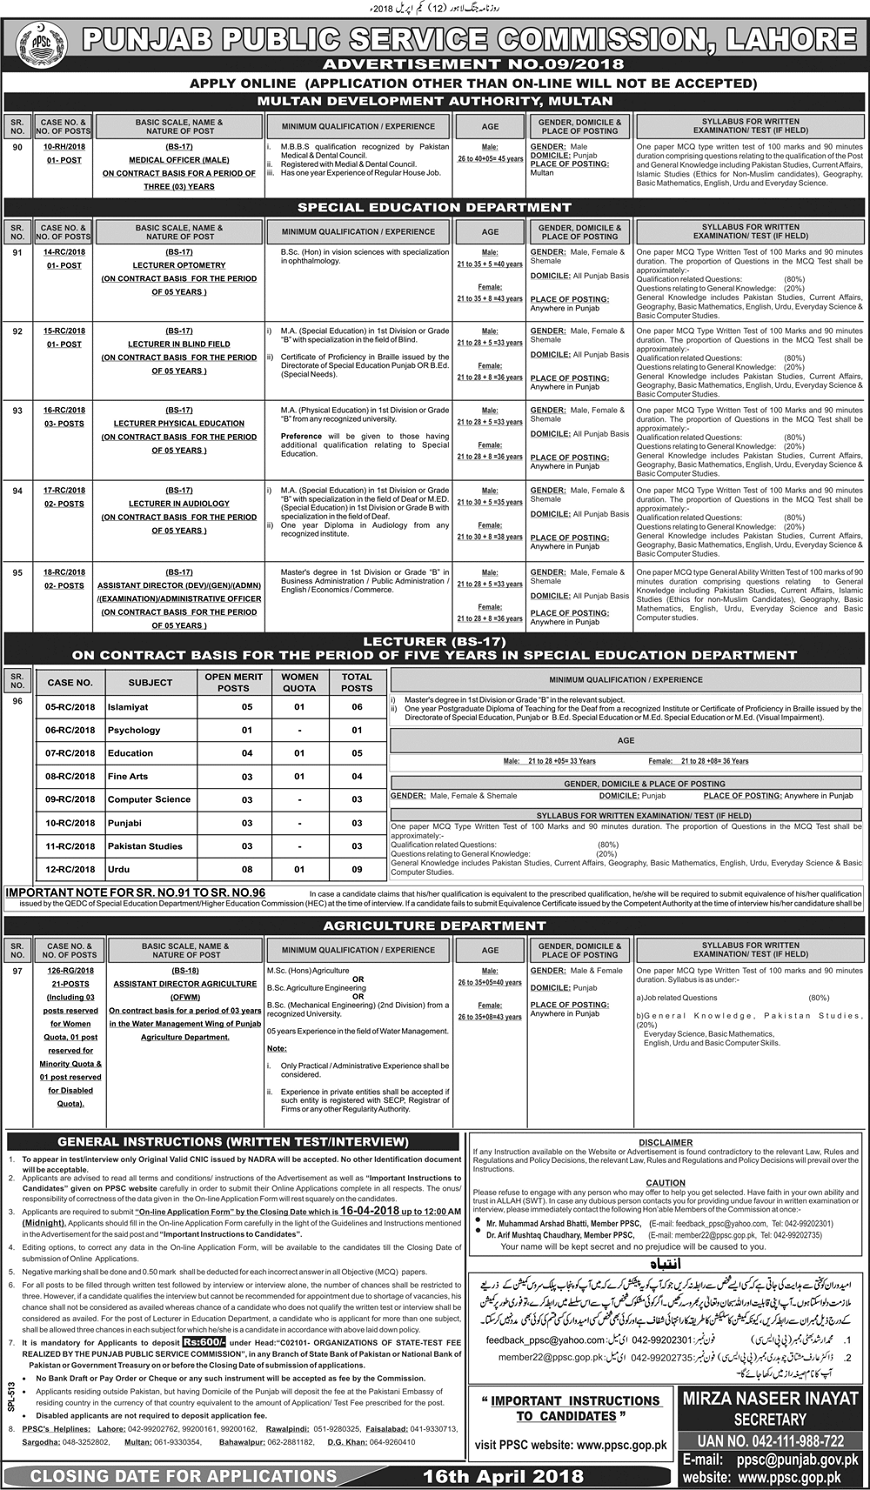 Jobs for Doctors, Jobs for Agriculture Officers, Engineering Jobs 2018, Jobs in Punjab, Jobs in Education Department, Jobs for Lecturers, Jobs for Teachers in Punjab